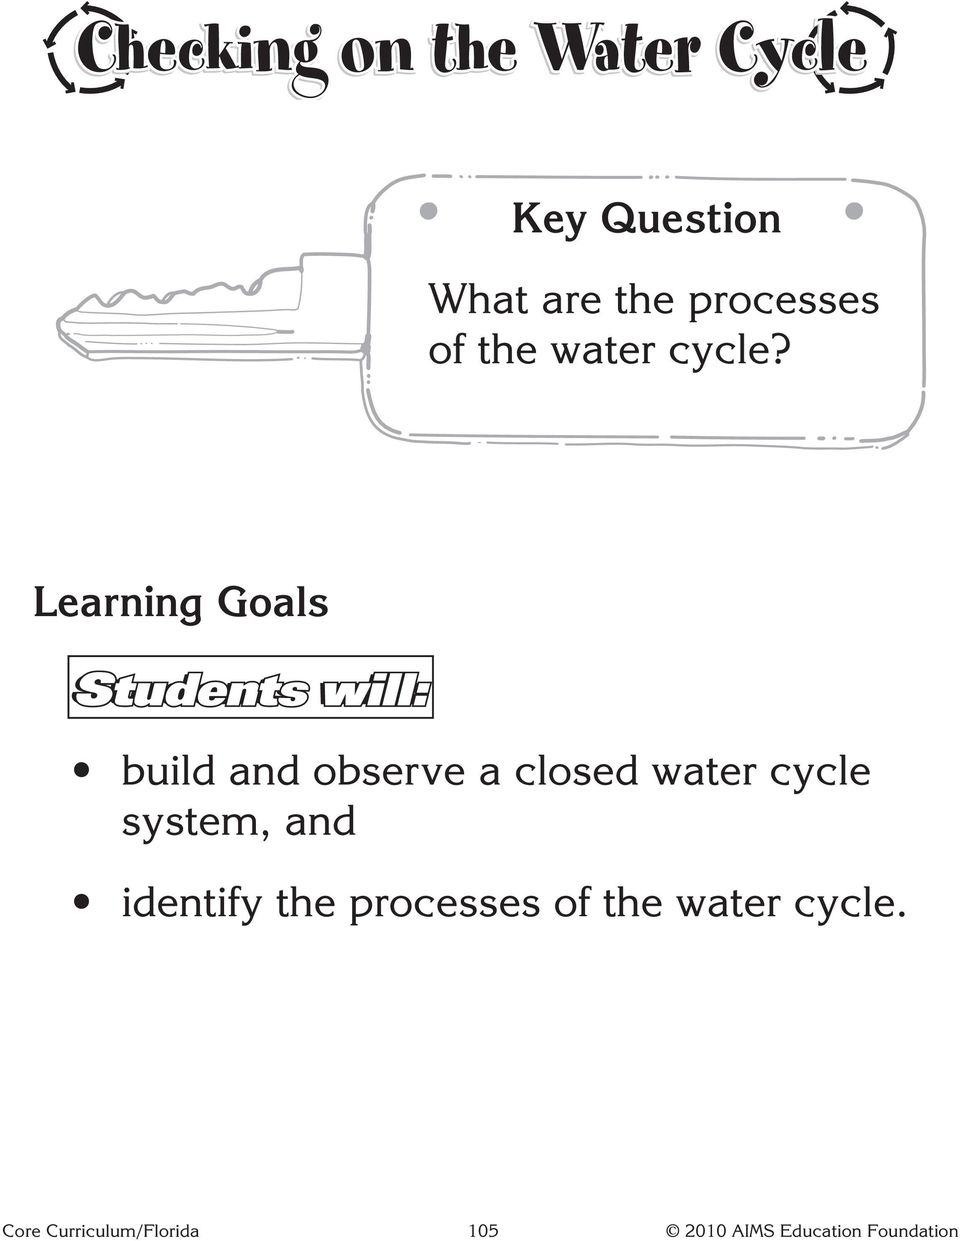 Learning Goals Students will: build and observe a closed water